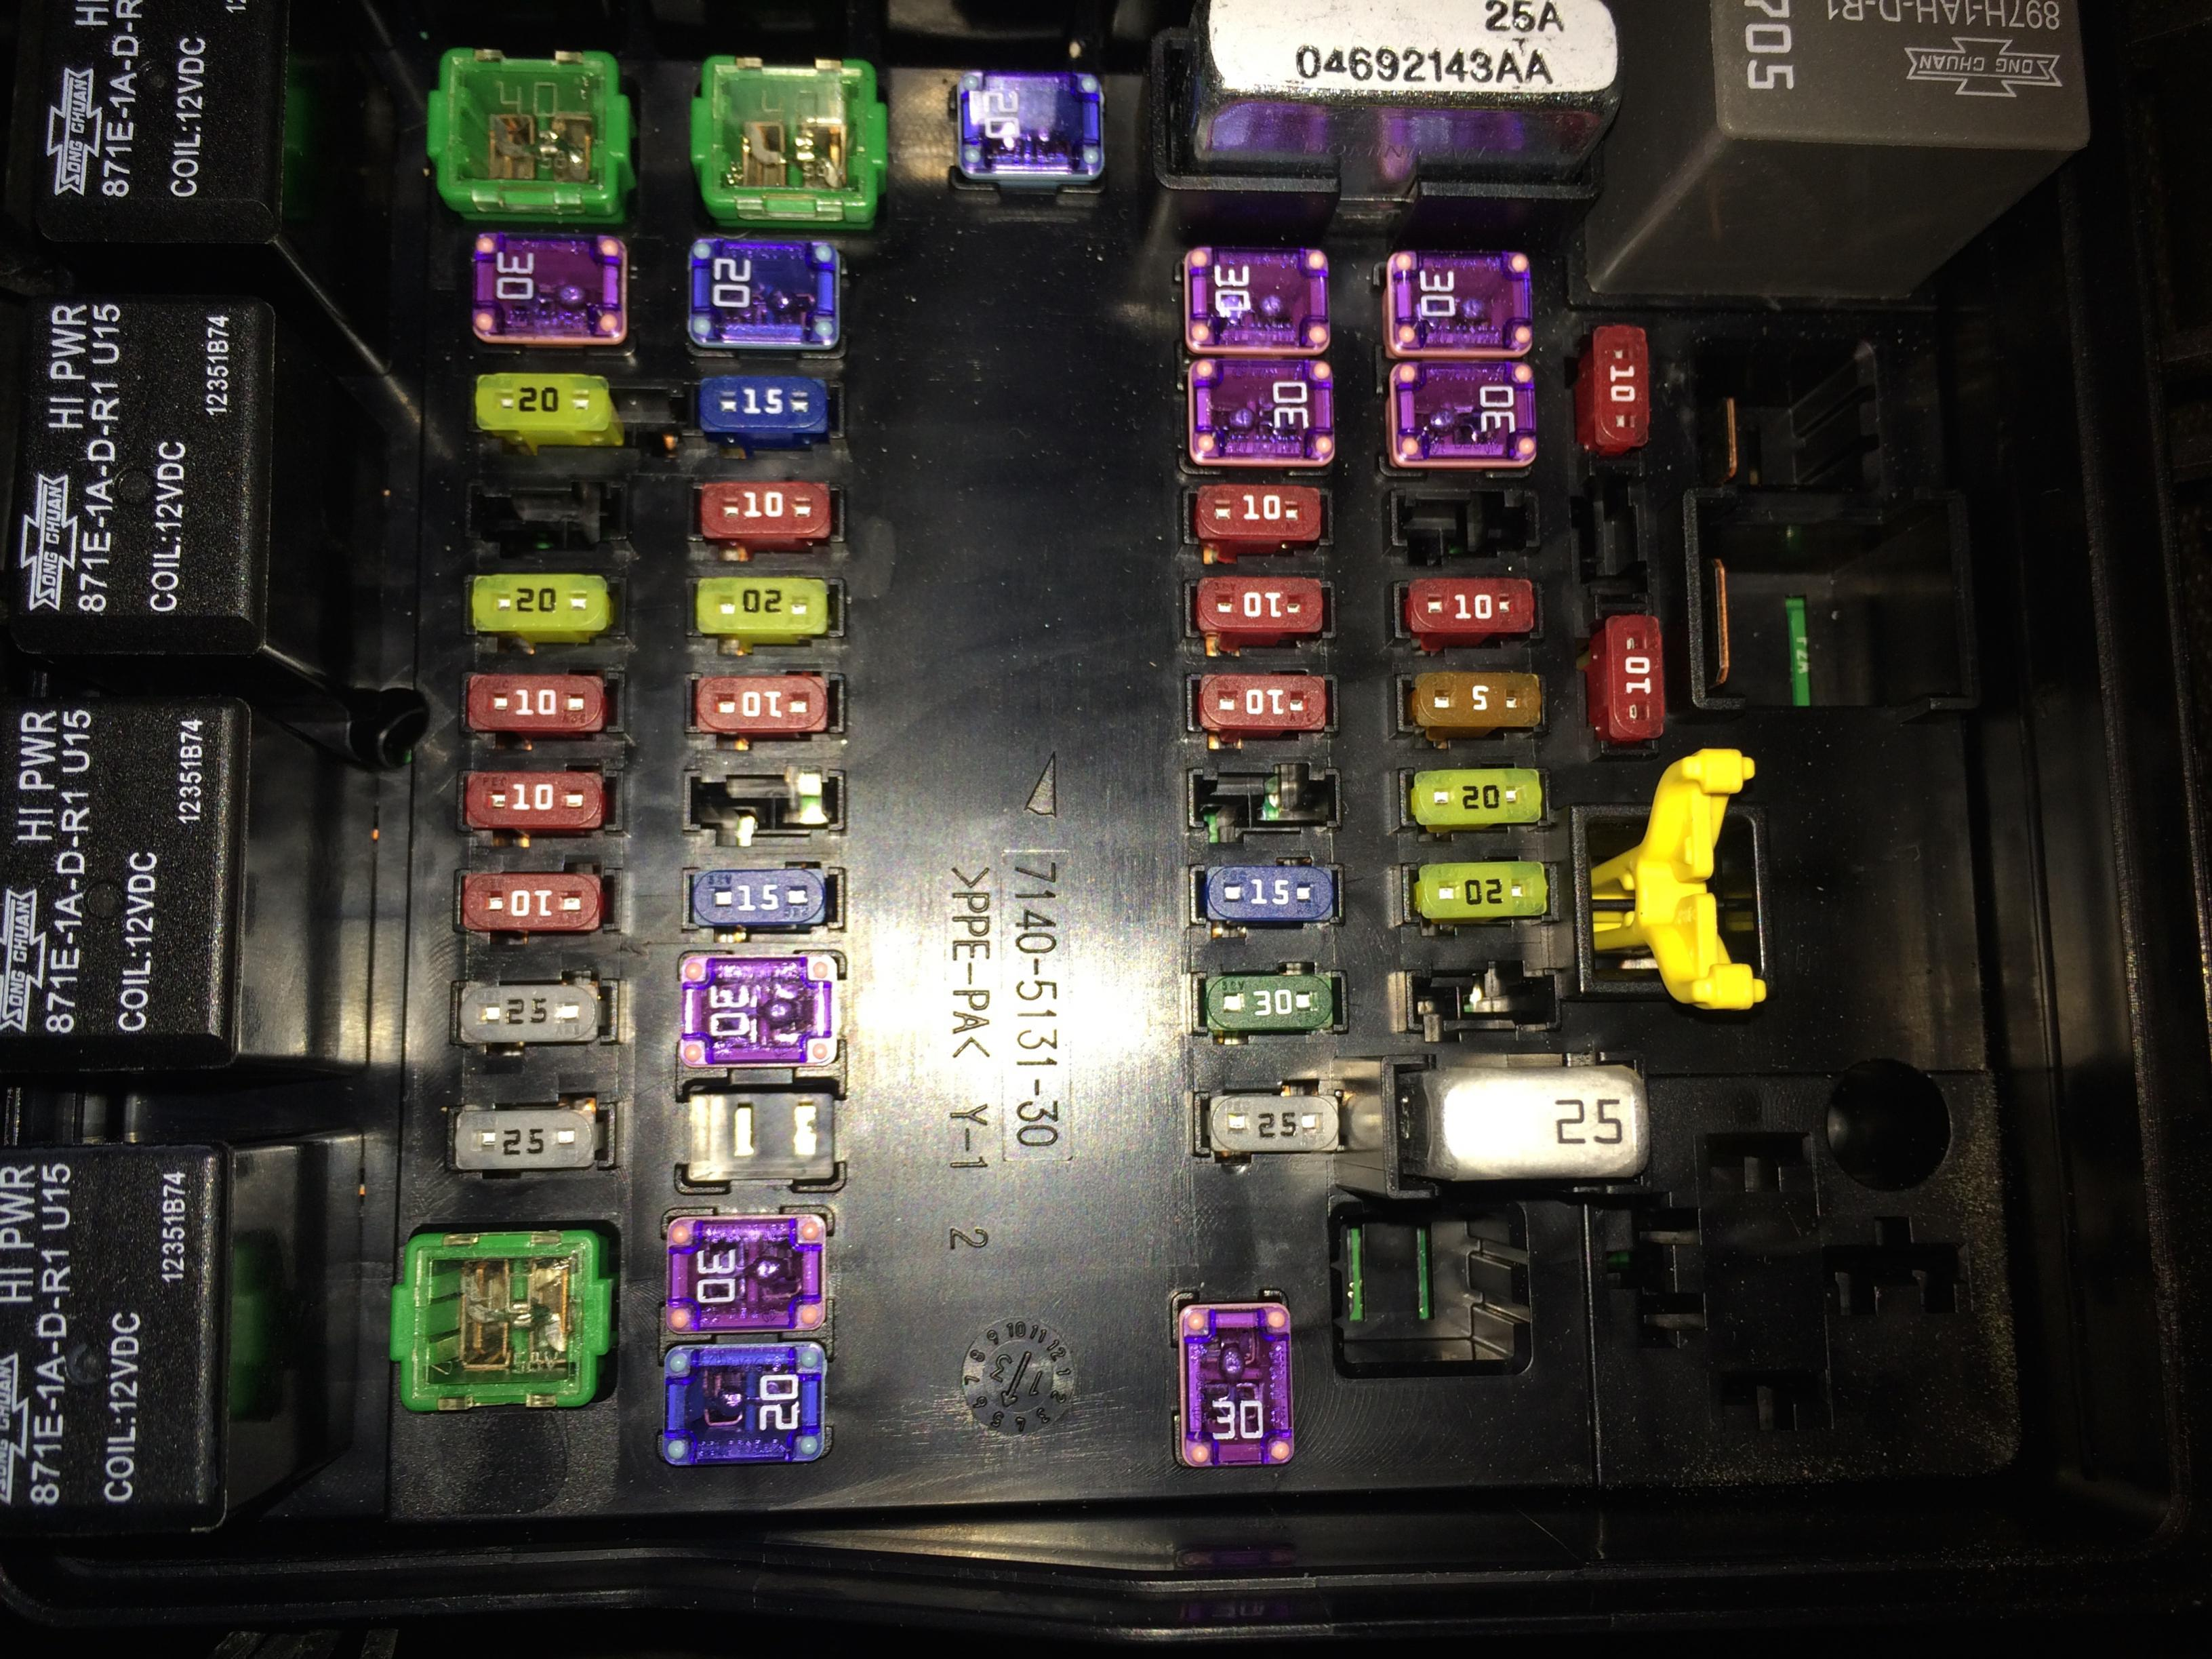 Fuse Box 92 Chevy 3500 Another Blog About Wiring Diagram 1996 Dodge Ram 2500 Trailer 2014